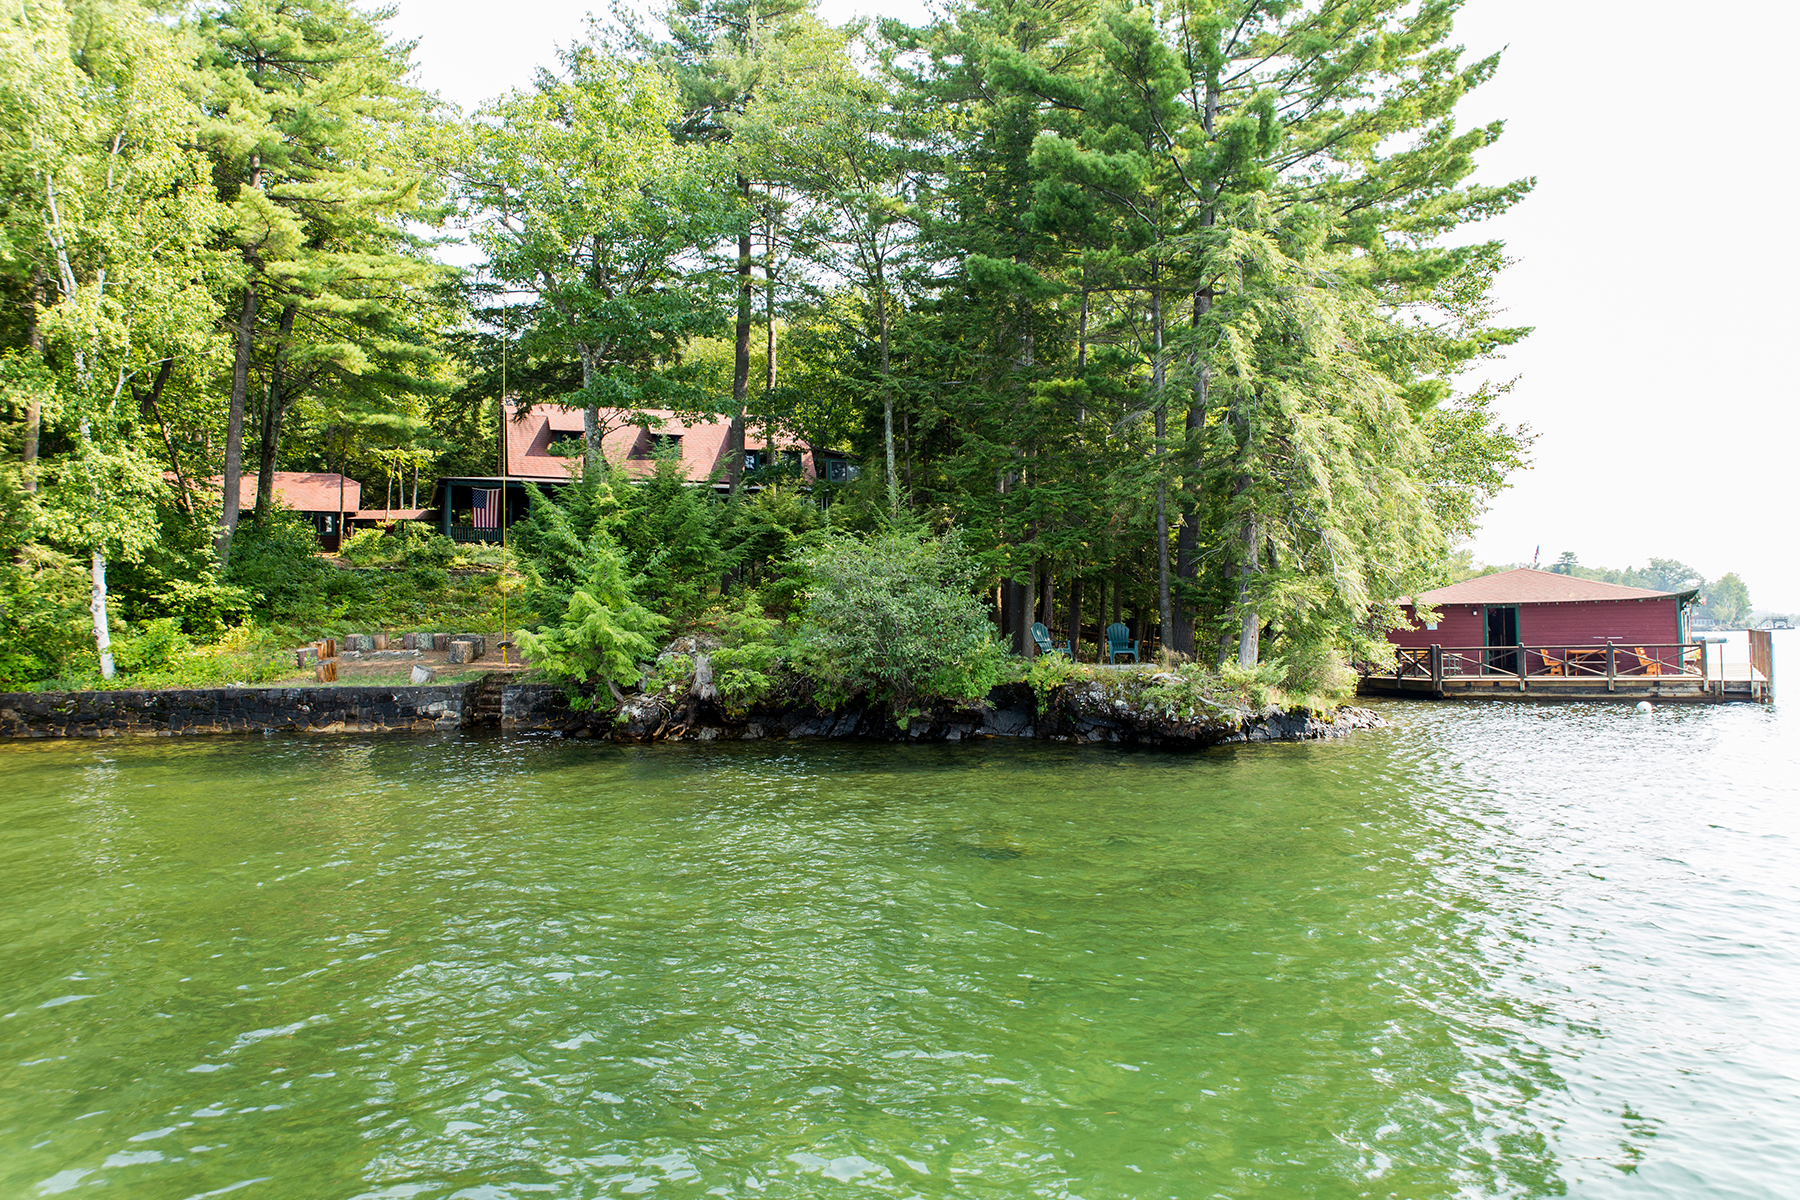 Additional photo for property listing at Tapawingo - Lake George Waterfront 32  Bean Rd Kattskill Bay, New York 12844 United States